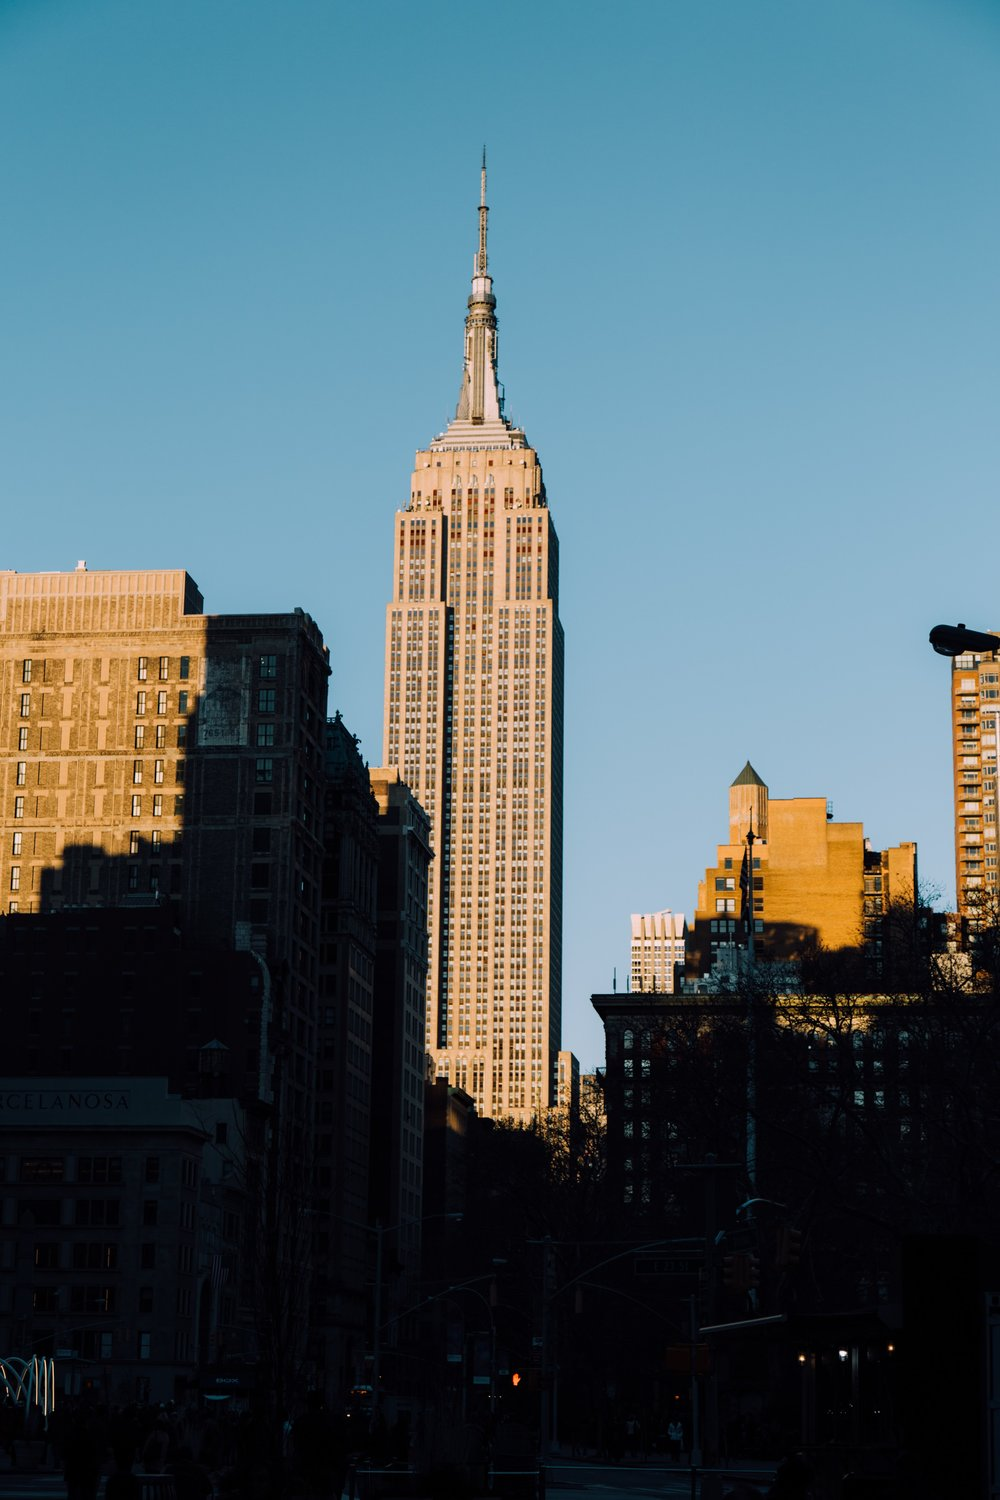 Empire State Building as viewed from Flatiron District, 5th Avenue.